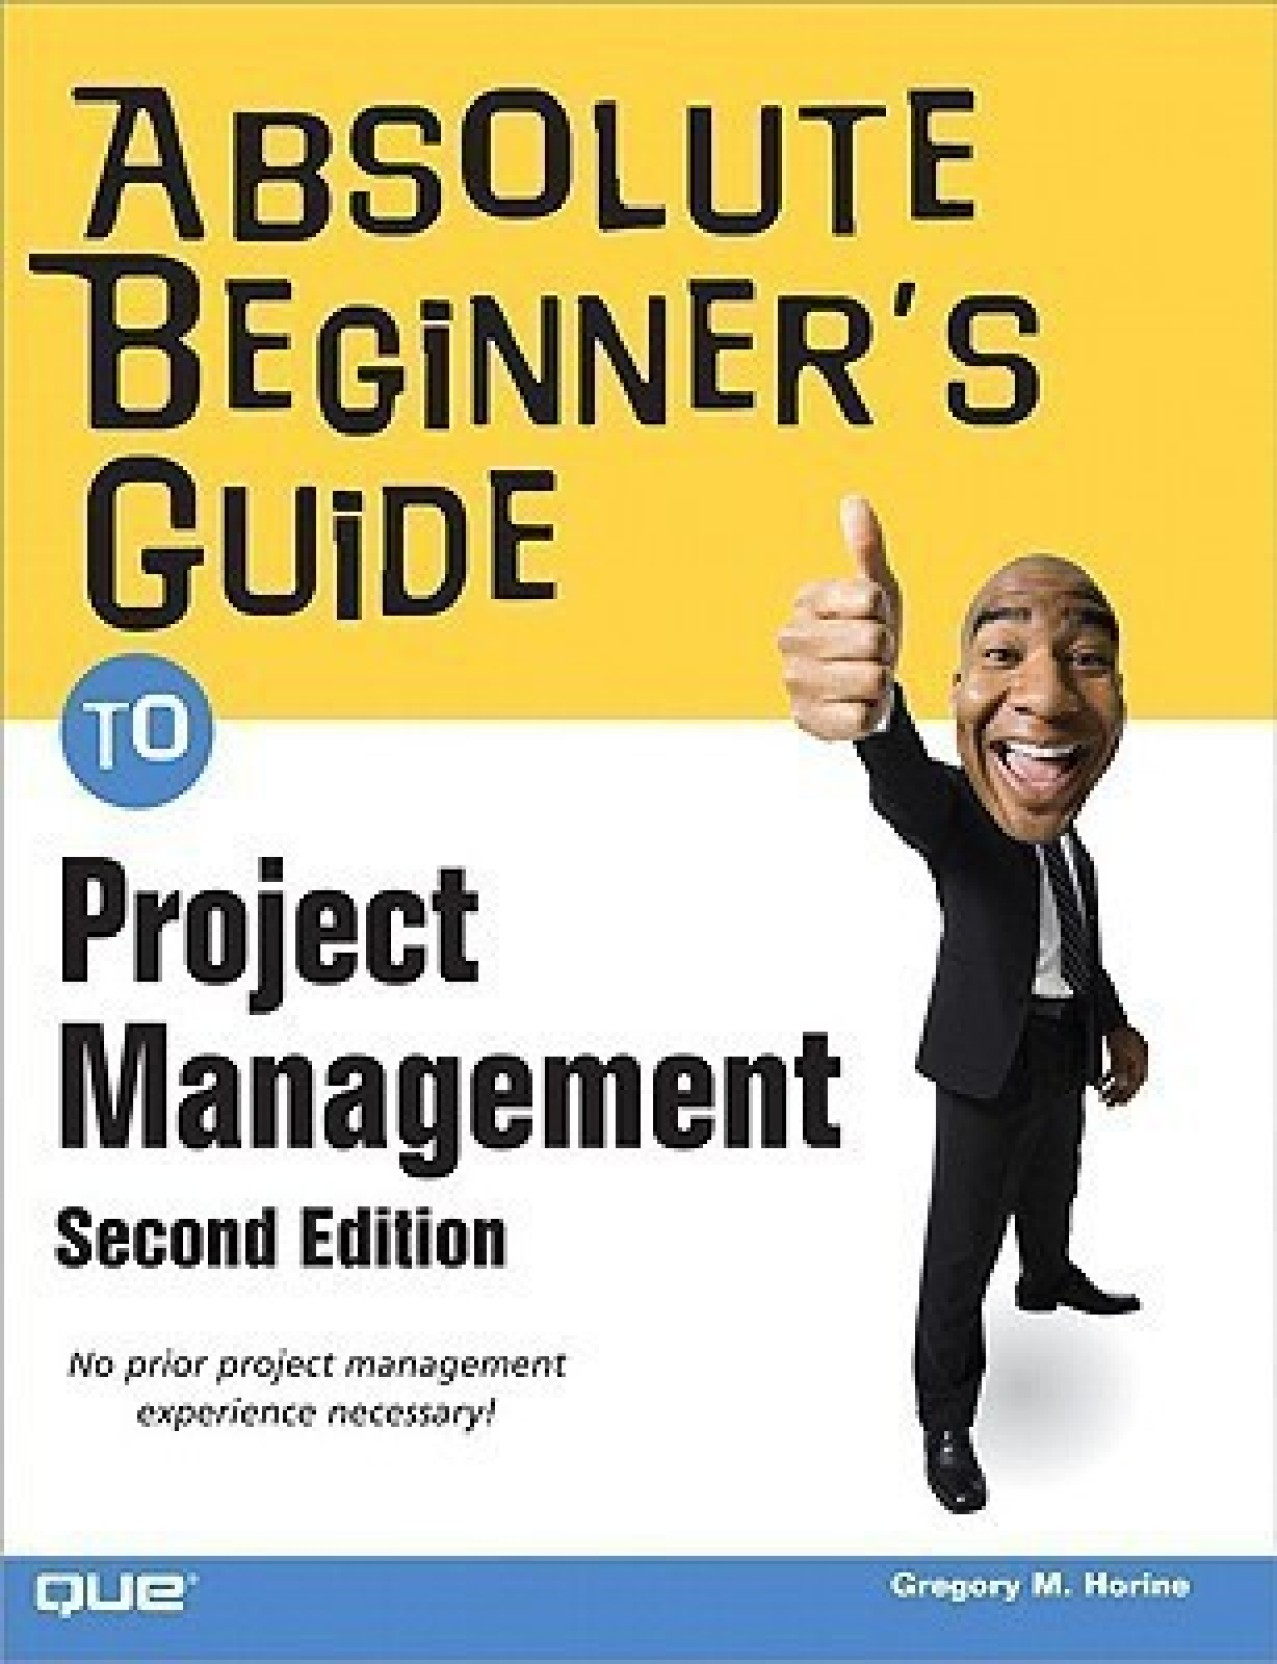 Absolute Beginner's Guide to Project Management. Share